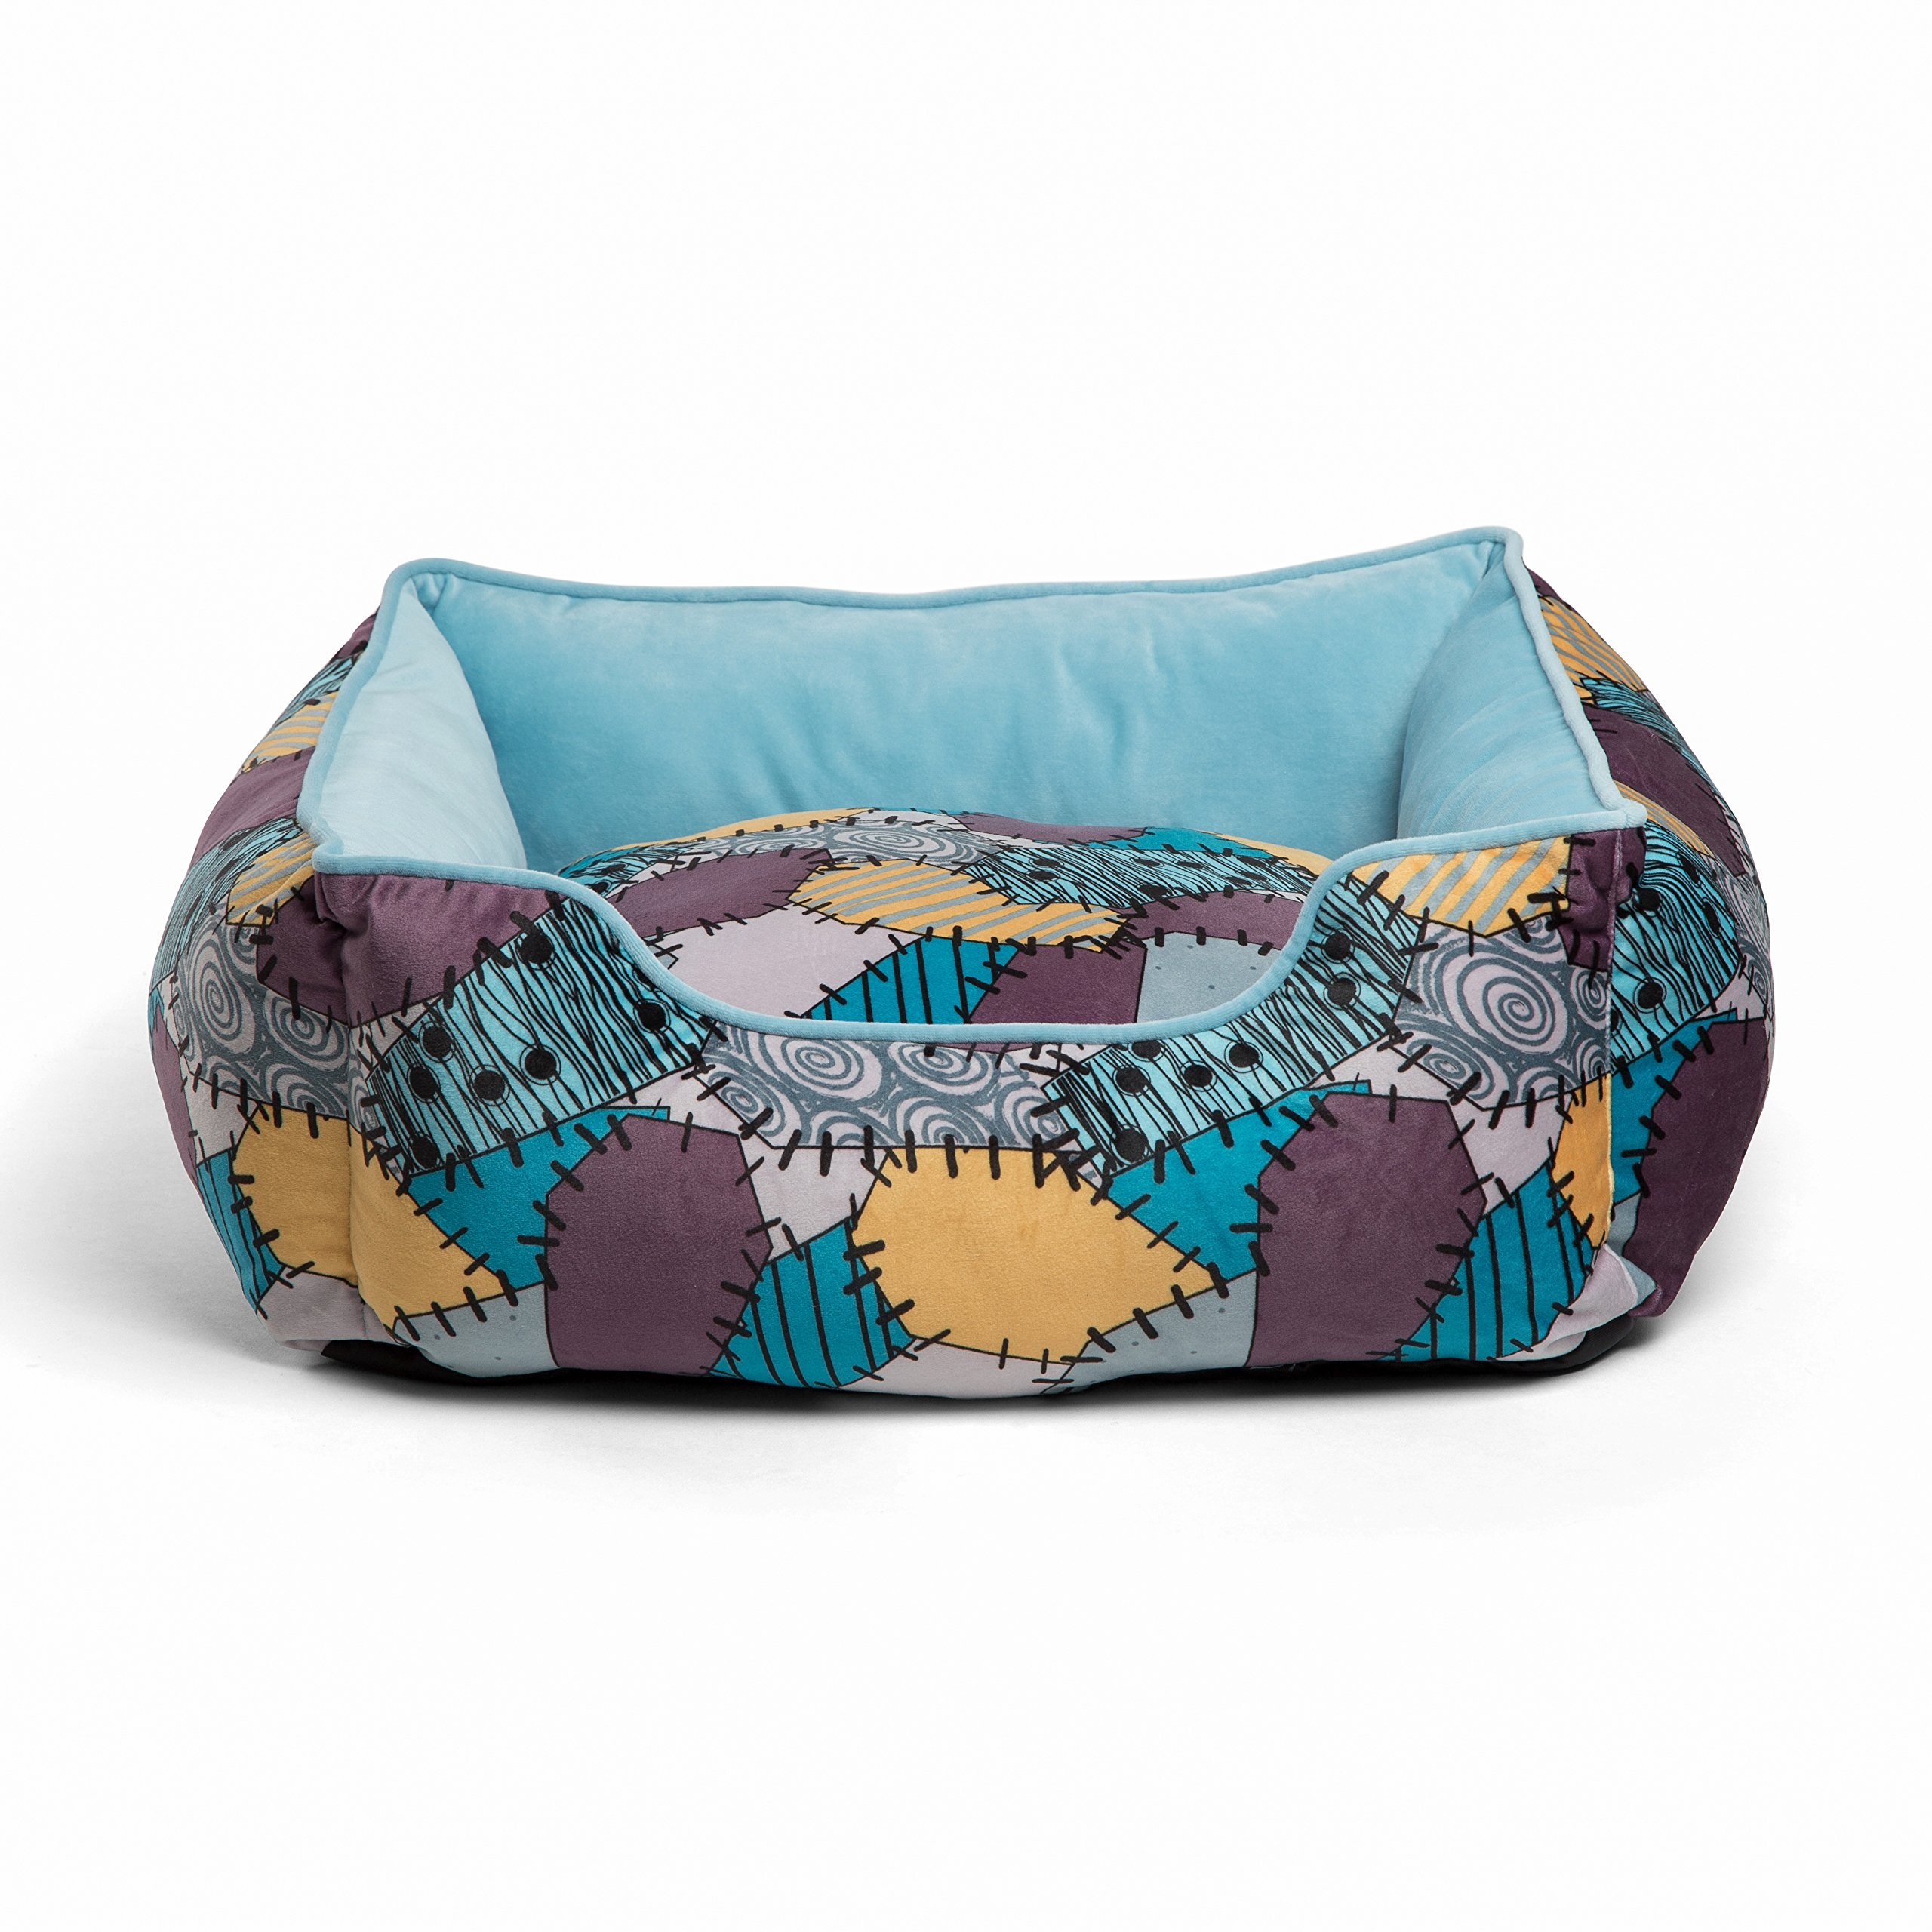 Disney Nightmare Before Christmas Sally Patchwork Bolstered Corded Rectangular Cuddler Dog Bed / Cat Bed; Reversible Insert, Dirt/Water Resistant Bottom, 21''X19''X8'' by Disney